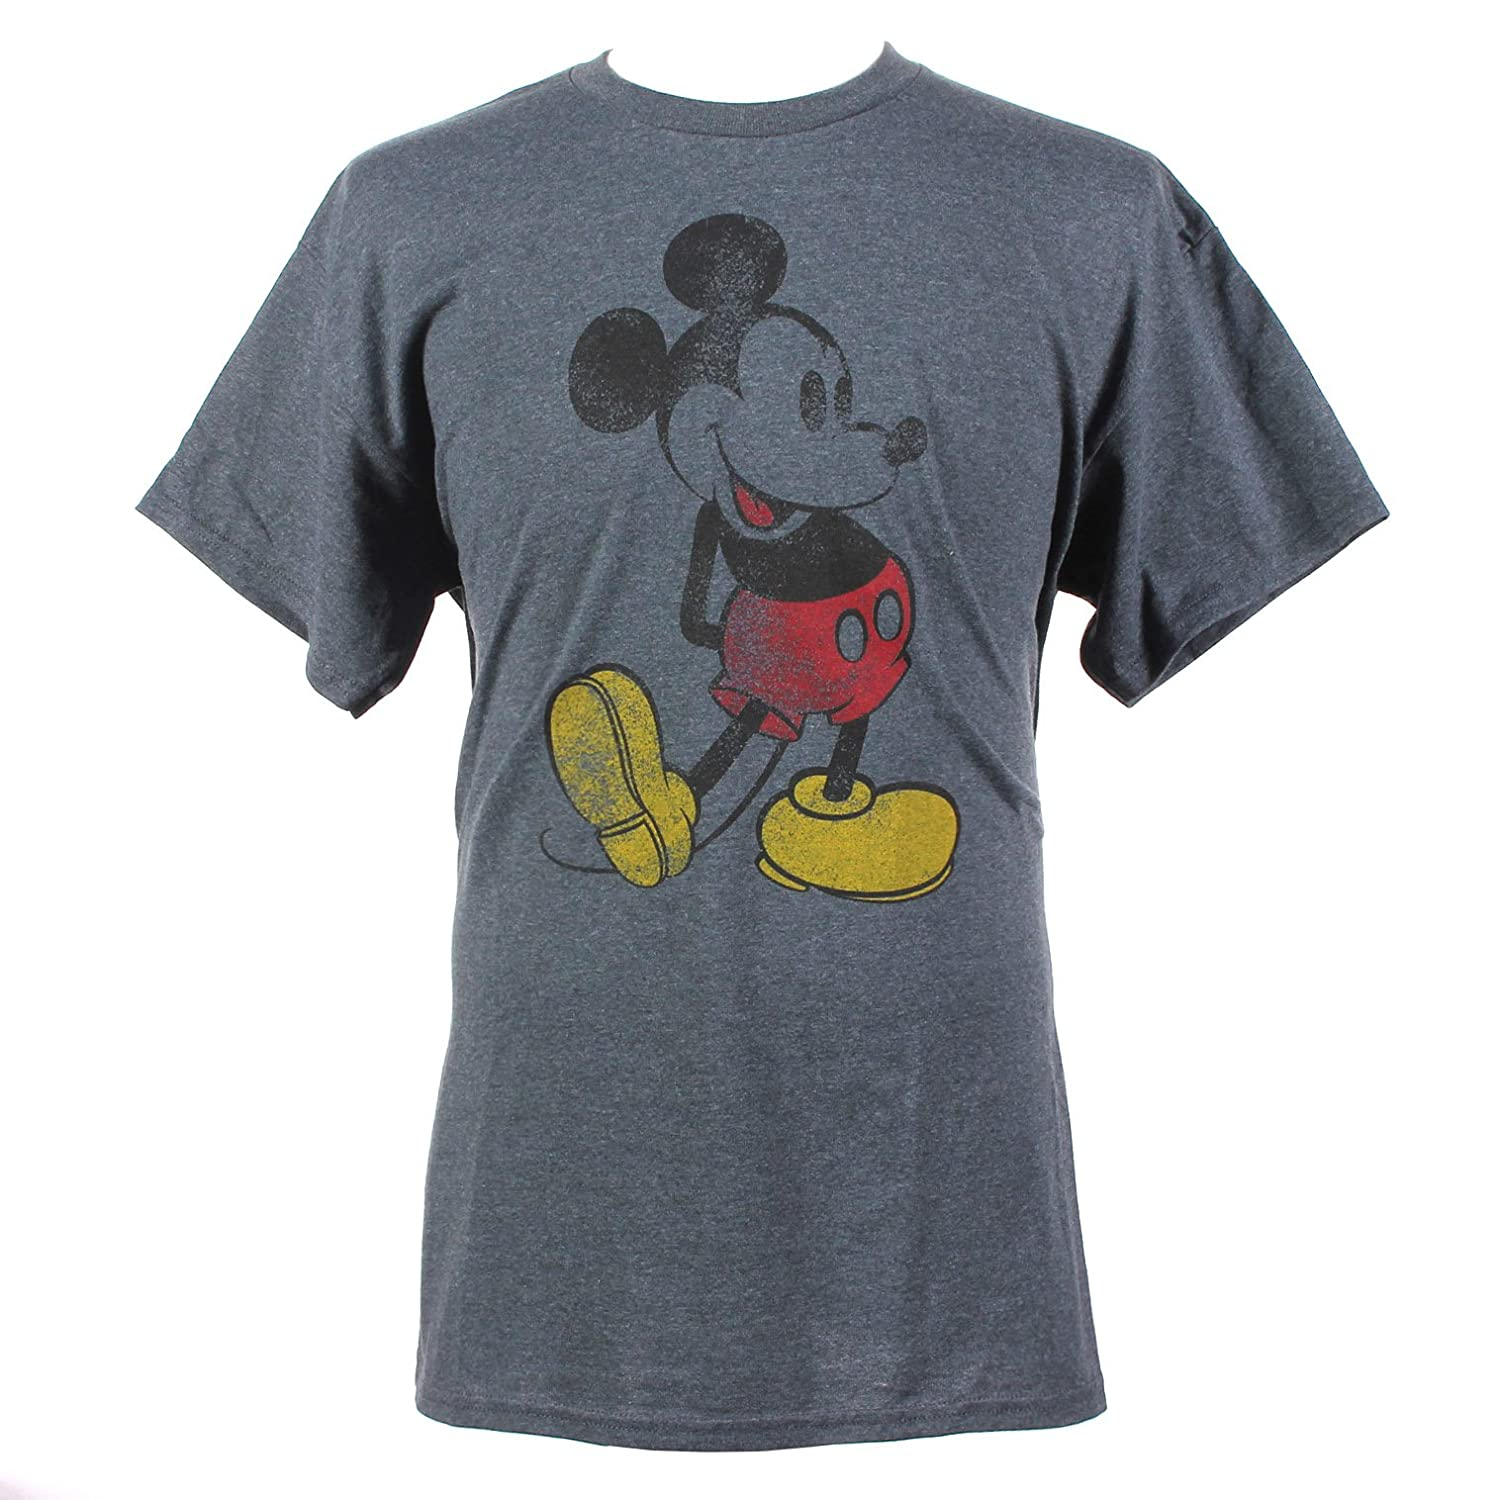 Disney Mickey Mouse Classic Distressed Graphic T-Shirt | Amazon.com